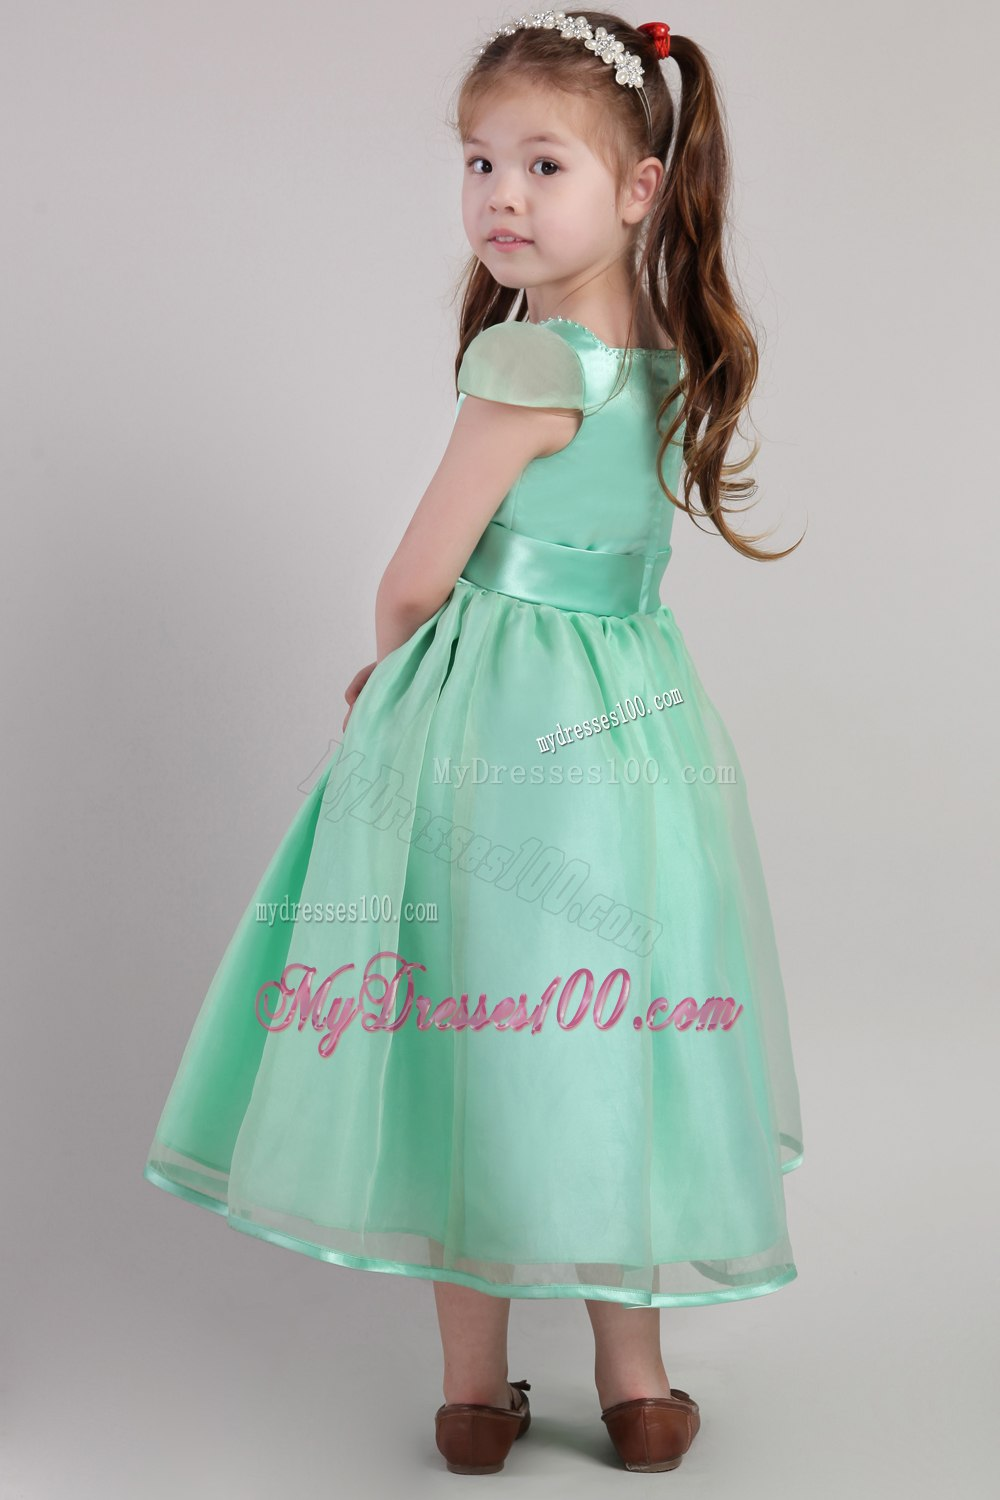 Fall Color Dresses For Little Girls Belt Little Girl Dress